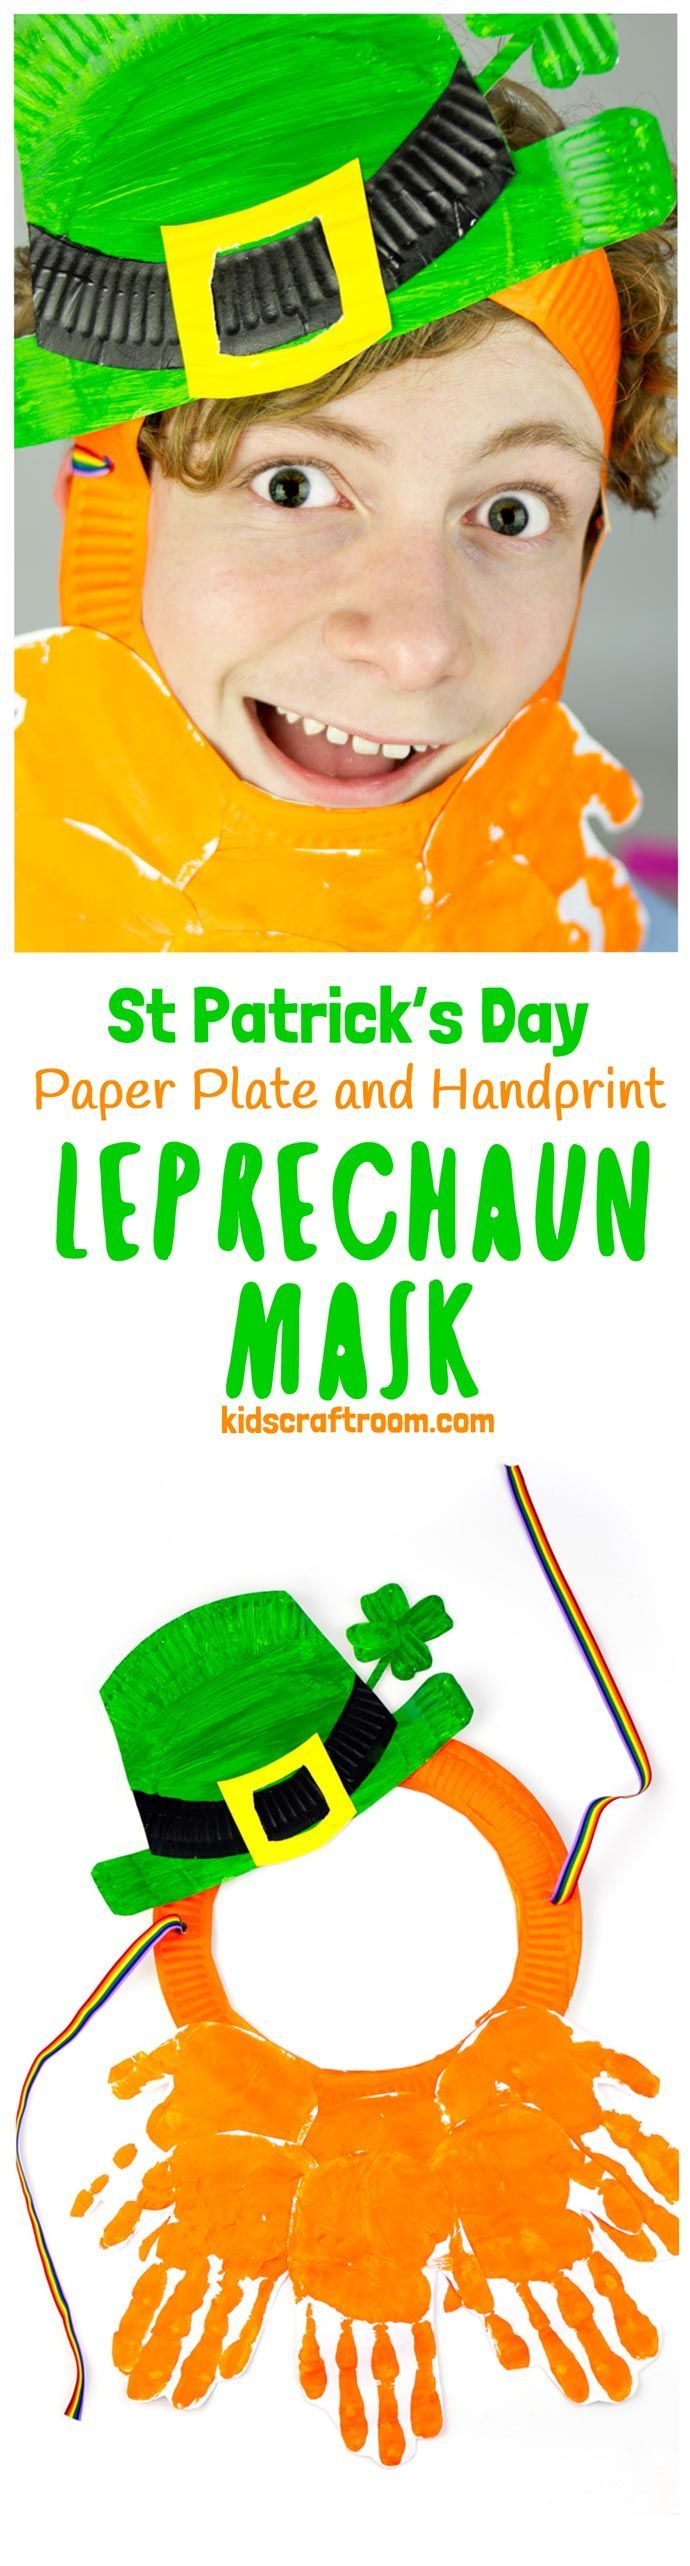 LEPRECHAUN MASK - This Paper Plate and Handprint Leprechaun Mask is such a fun St Patrick's Day craft for kids. Easy to make and fun for imaginative play as cheeky leprechauns! St Paddy's Day fun for everyone! #kidscraftroom #stpatricksday #stpattysday #stpatricks #saintpatricksday #stpatricksdaycrafts #leprechaun #mask #handprintcrafts #paperplatecrafts #handprint #paperplate #kidscrafts #craftsforkids #leprechauns #ireland #irishcrafts via @KidsCraftRoom